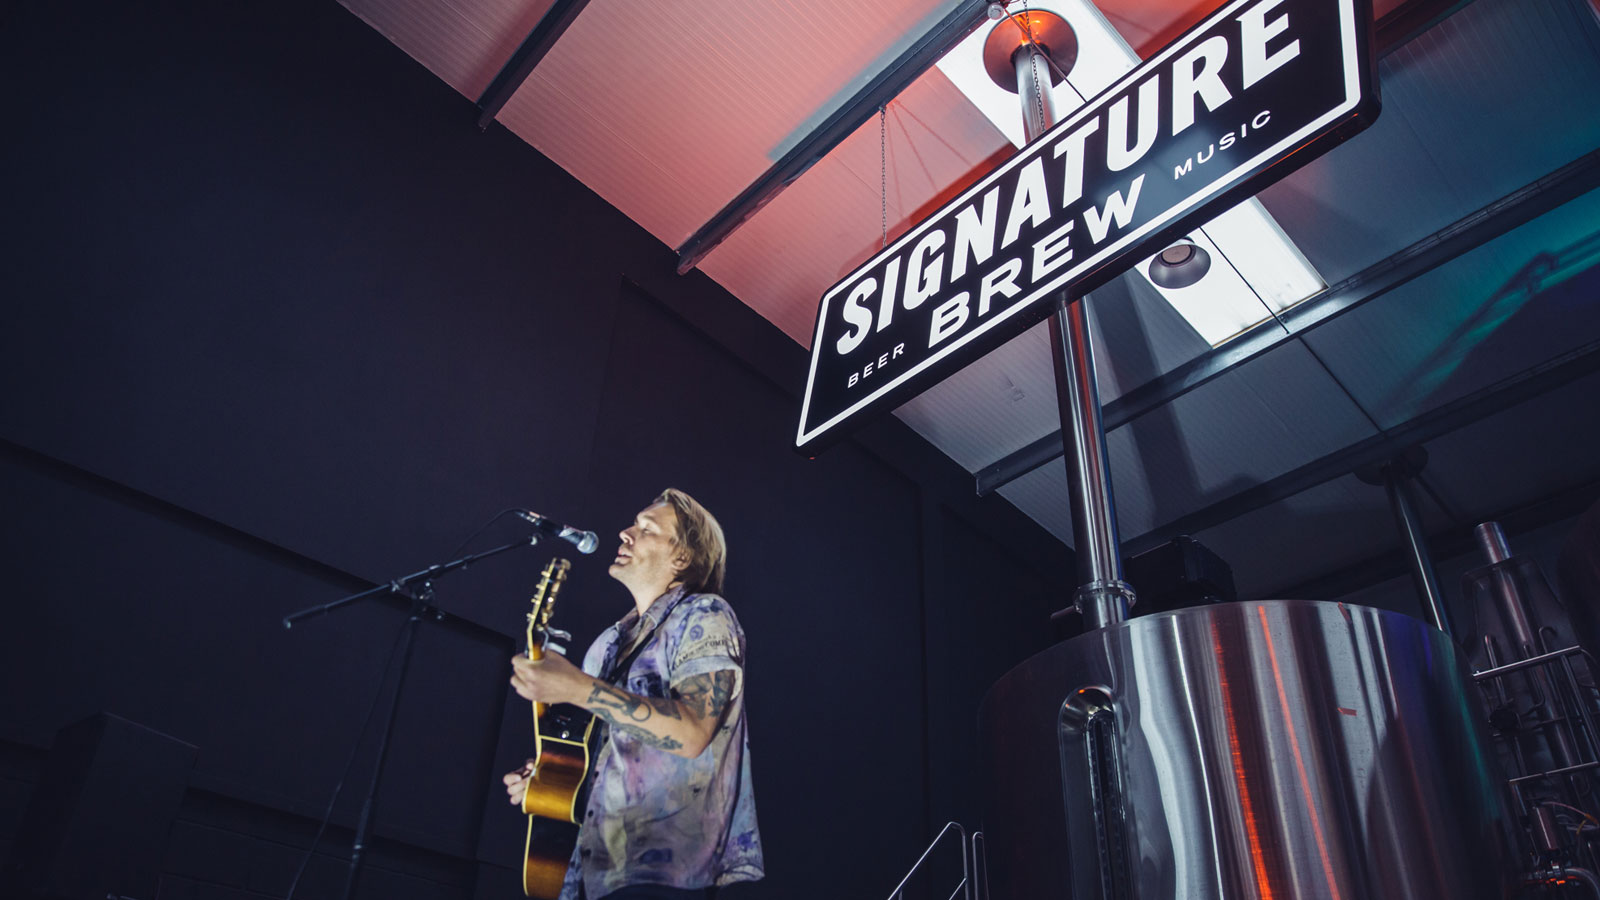 Keeping the Music Alive - Shure Friends, Signature Brew Are Fighting the Good Fight